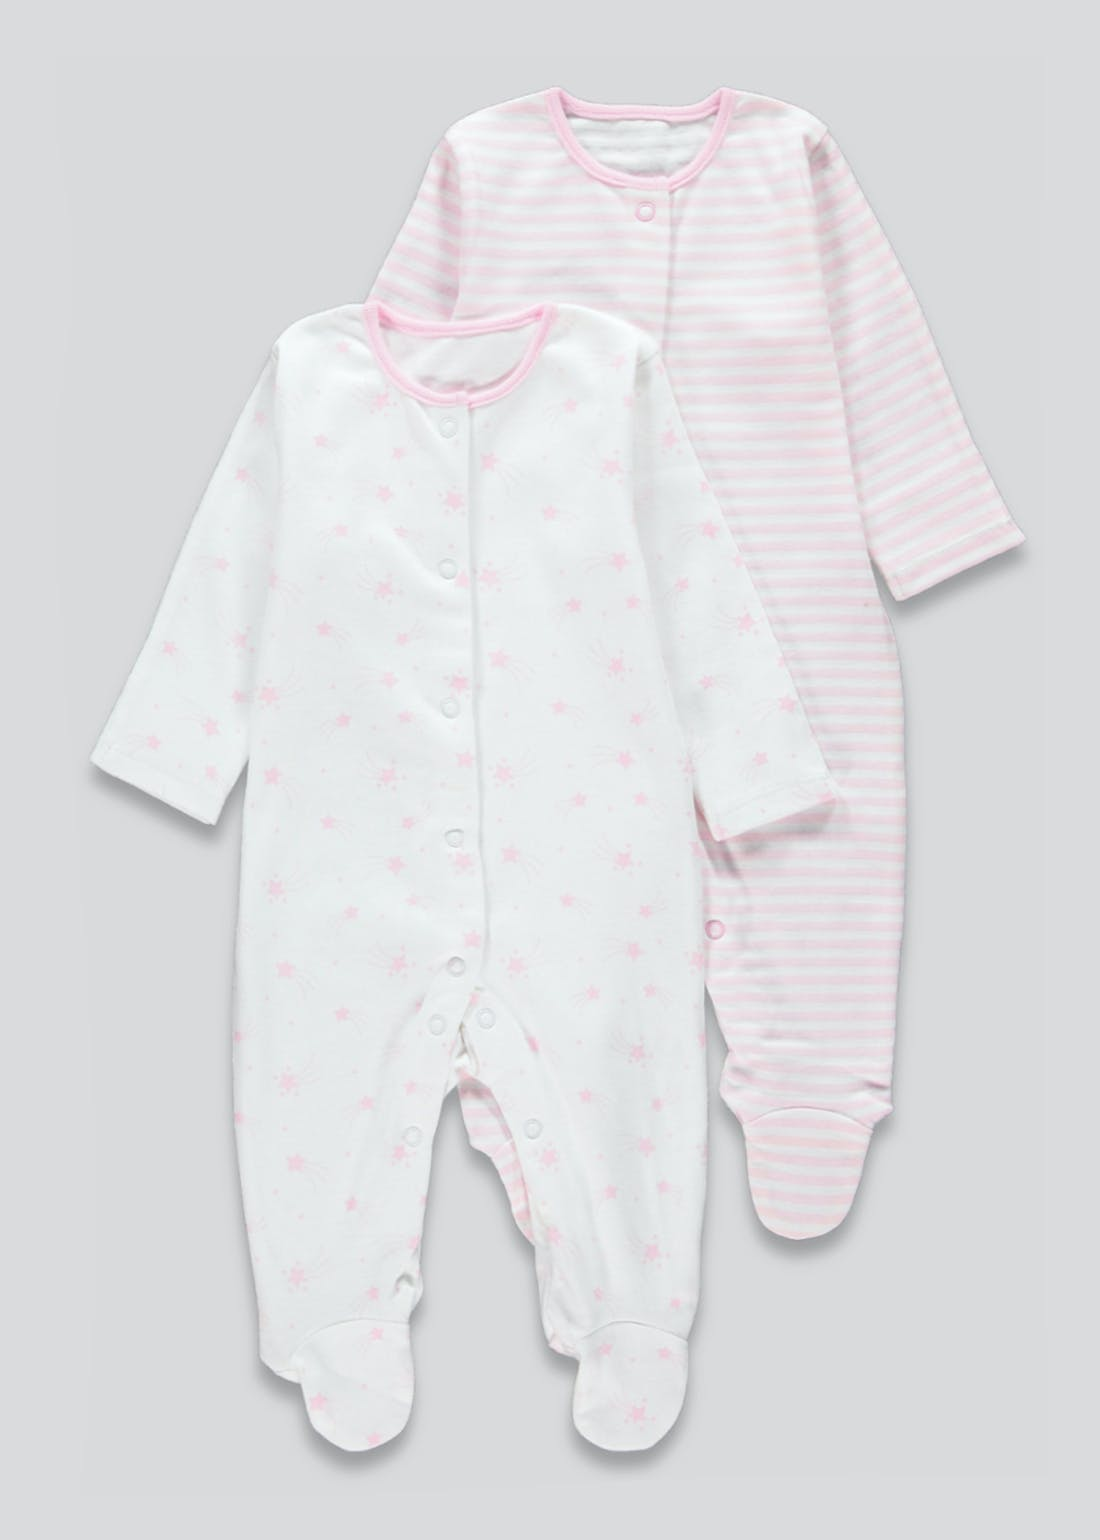 Girls 2 Pack Star Baby Grows (Newborn-23mths)